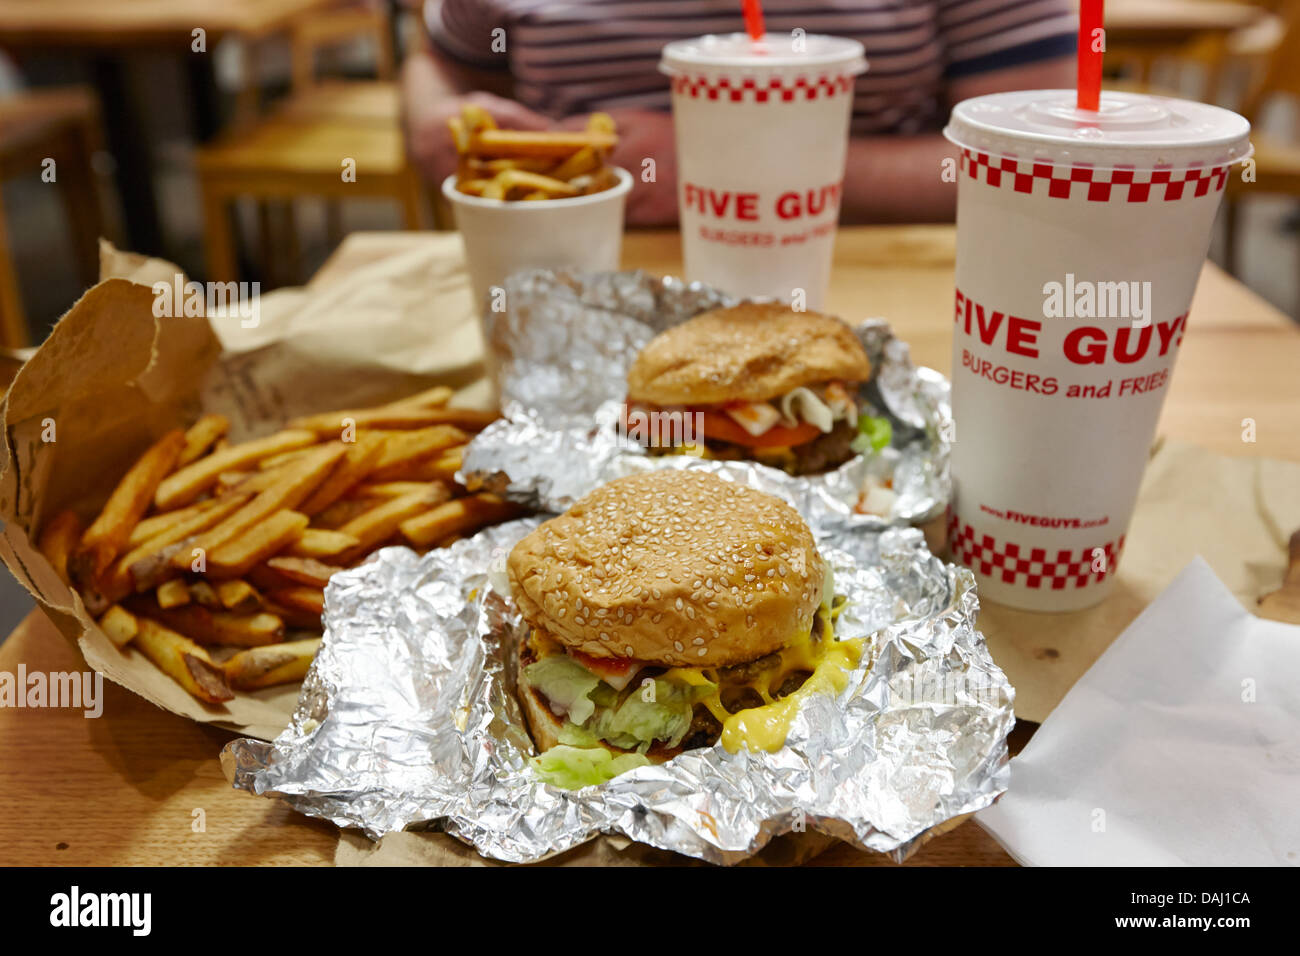 burger and fries and milkshake from five guys burger restaurant newly opened in covent garden london, england uk - Stock Image